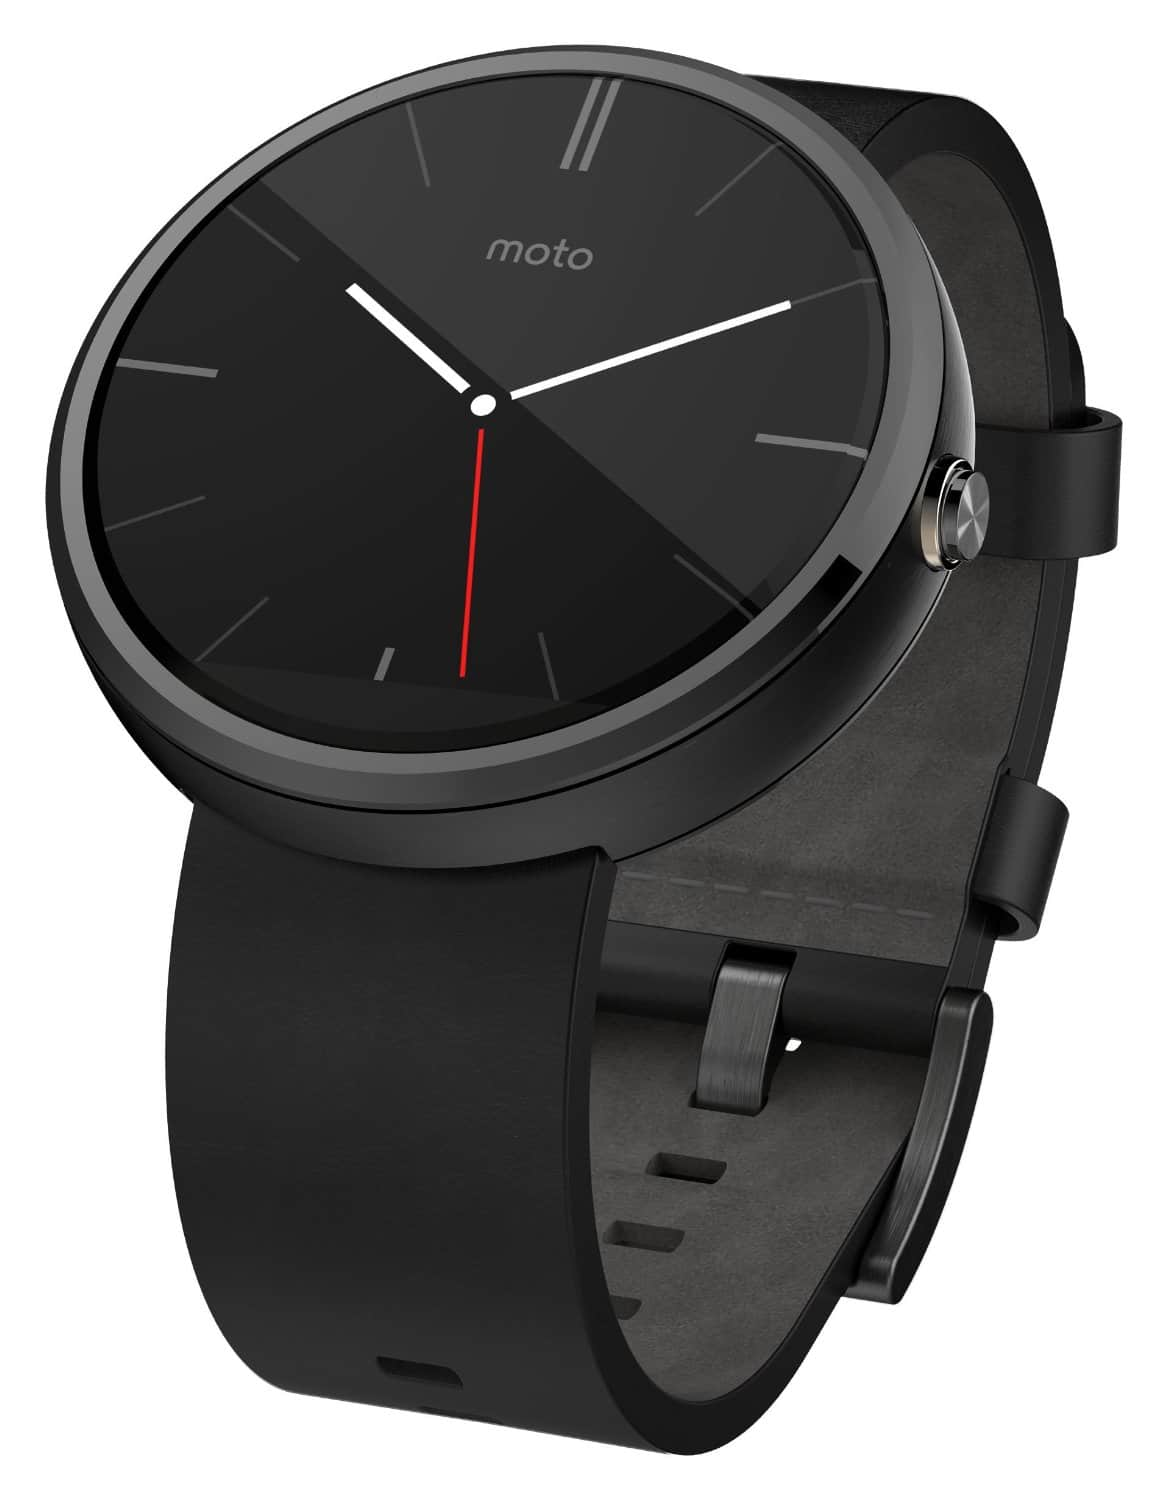 Motorola Moto 360 Smart Watch for Android Devices (1st Gen, Black)  $100 + Free Shipping